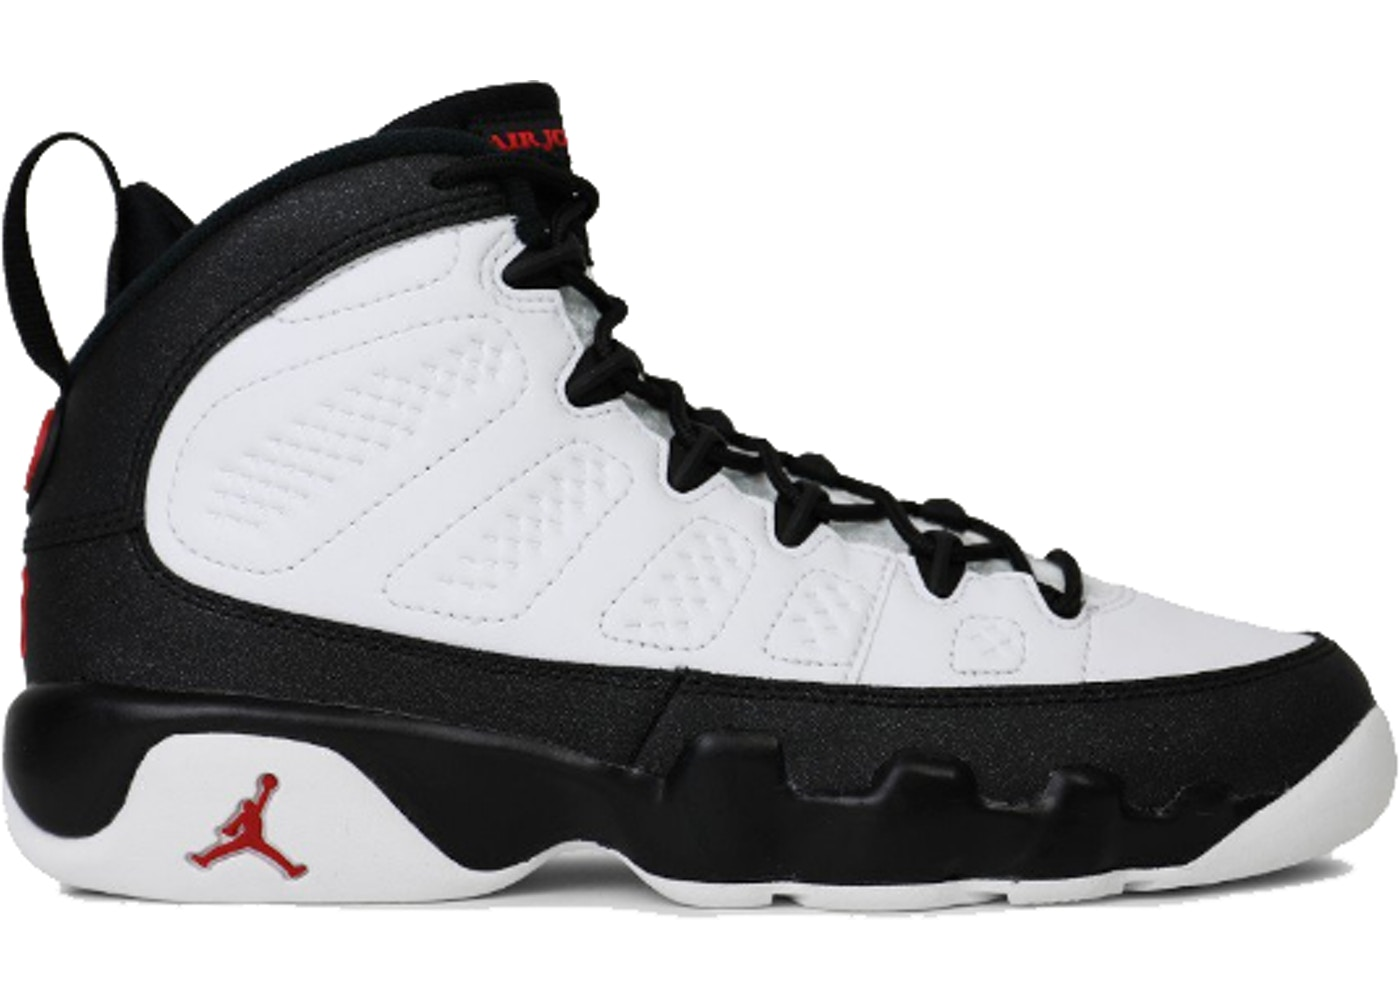 cheap for discount 44714 454ca Jordan 9 Retro OG 2016 (GS) - 302359-112